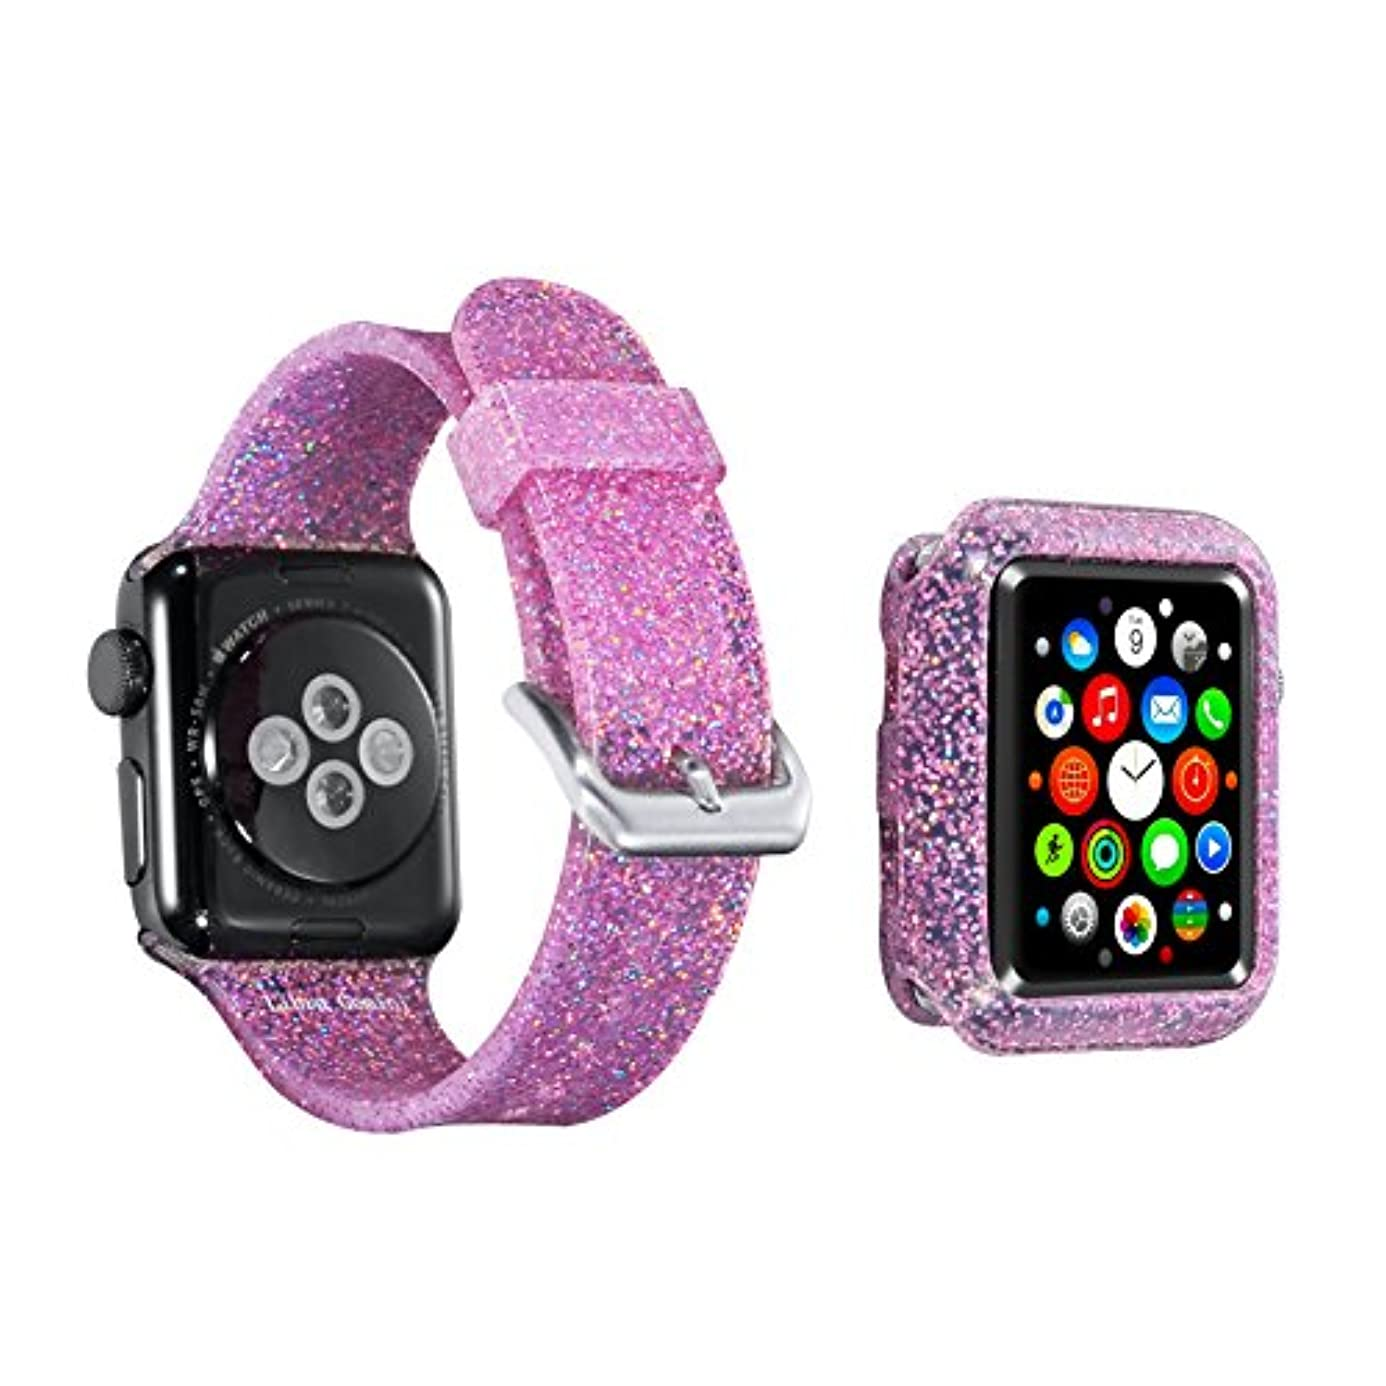 for Apple Watch Band 42mm Apple Watch case iWatch Band for Women Bling Stylish Glitter Silicone Sports Replacement Strap for Apple Watch Series3/2/1 (42mm-Pink Band Bumper Set) rlx4664193